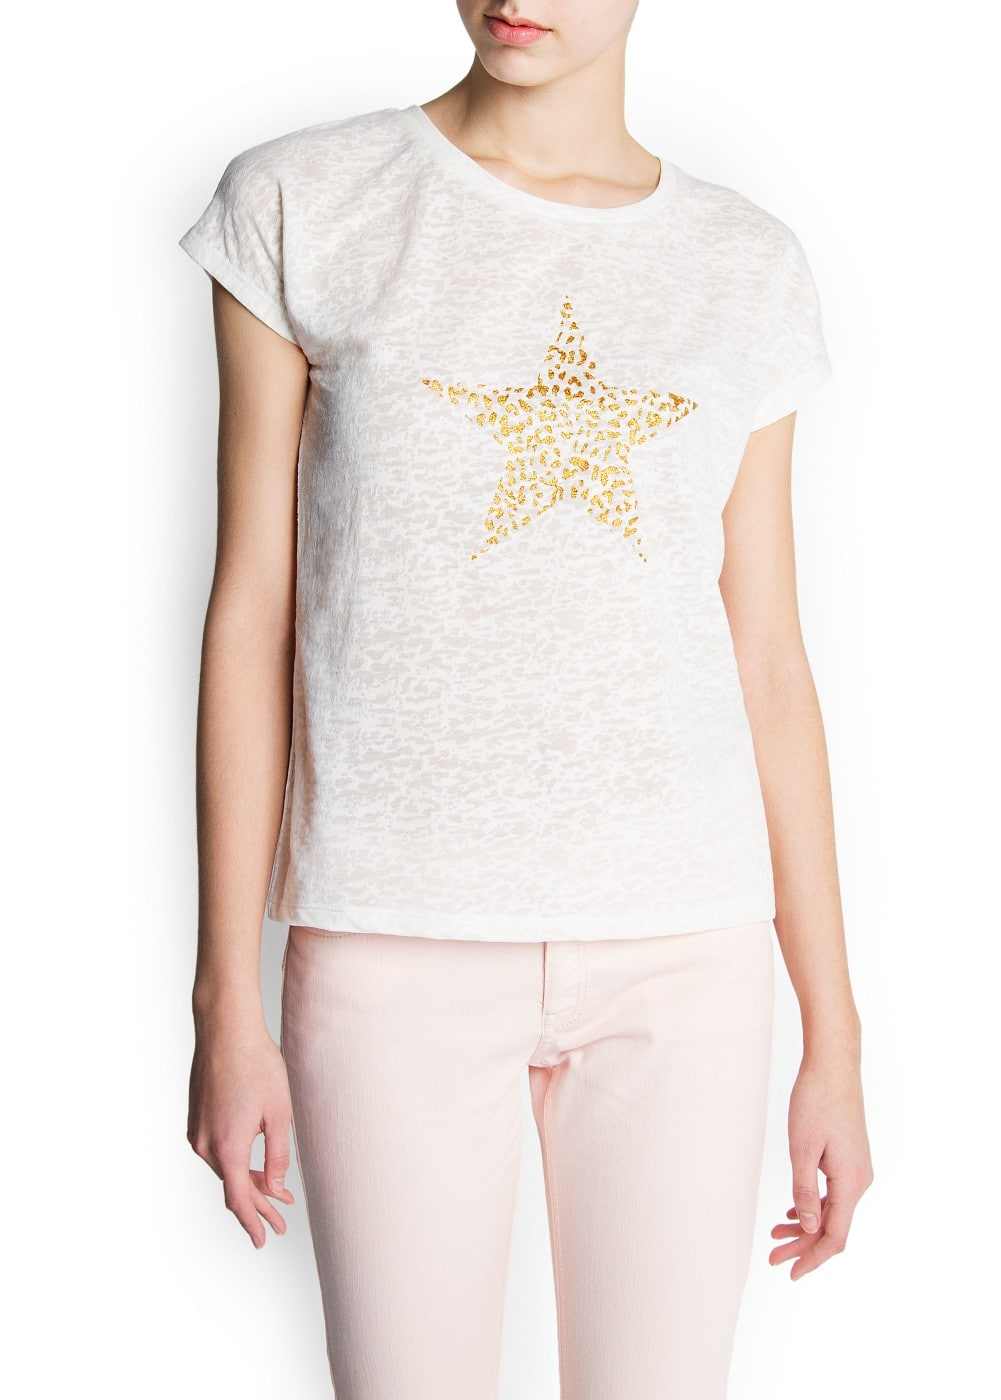 Star printed devoré t-shirt